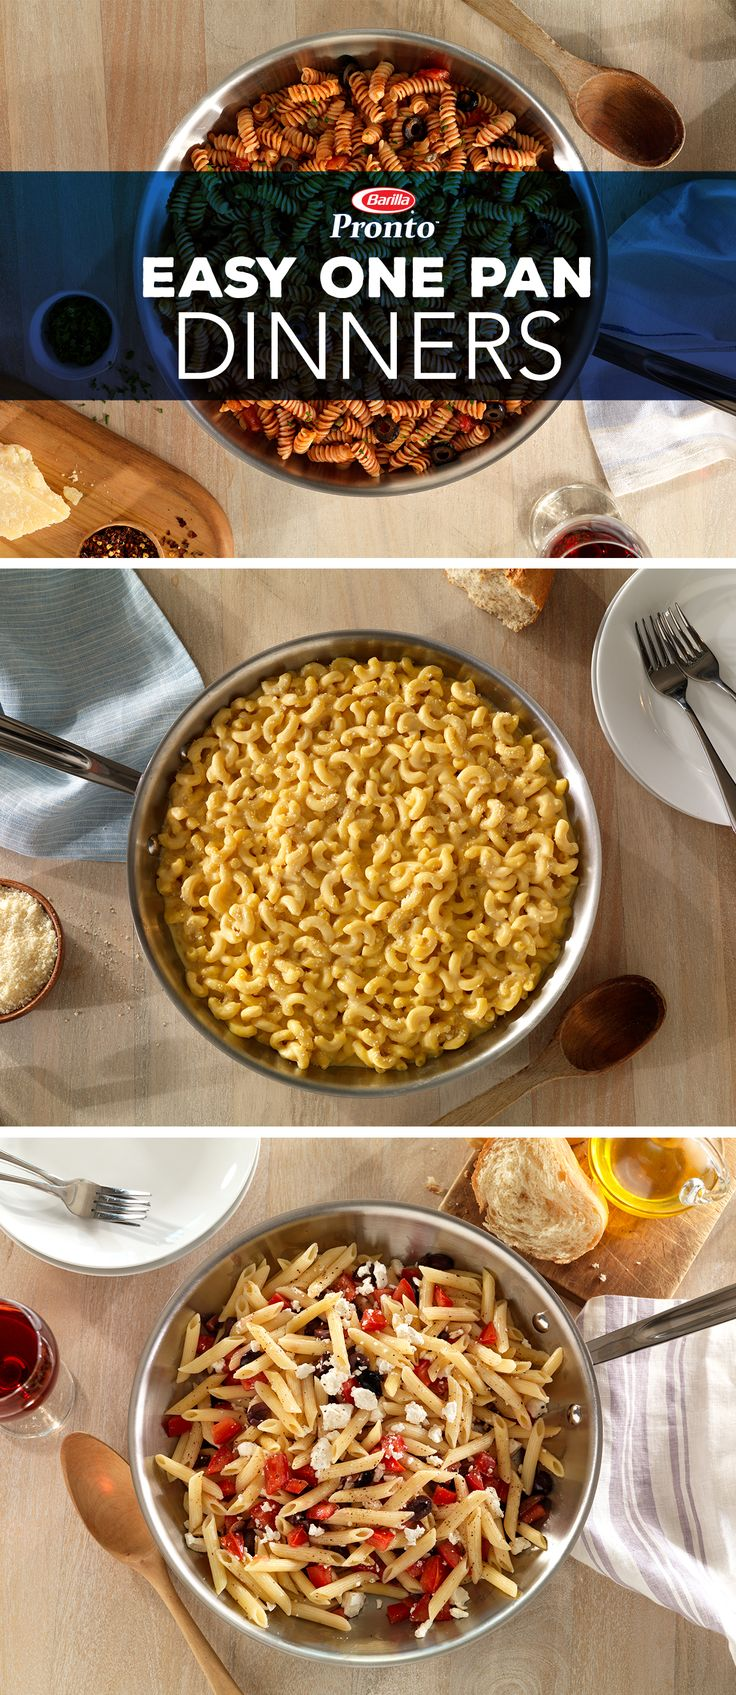 Try easy, all-in-one-pan Pronto™ pasta recipes that don't require more work than necessary! Cook, finish and serve a delicious meal in minutes – no waiting for water to boil or draining pasta required!